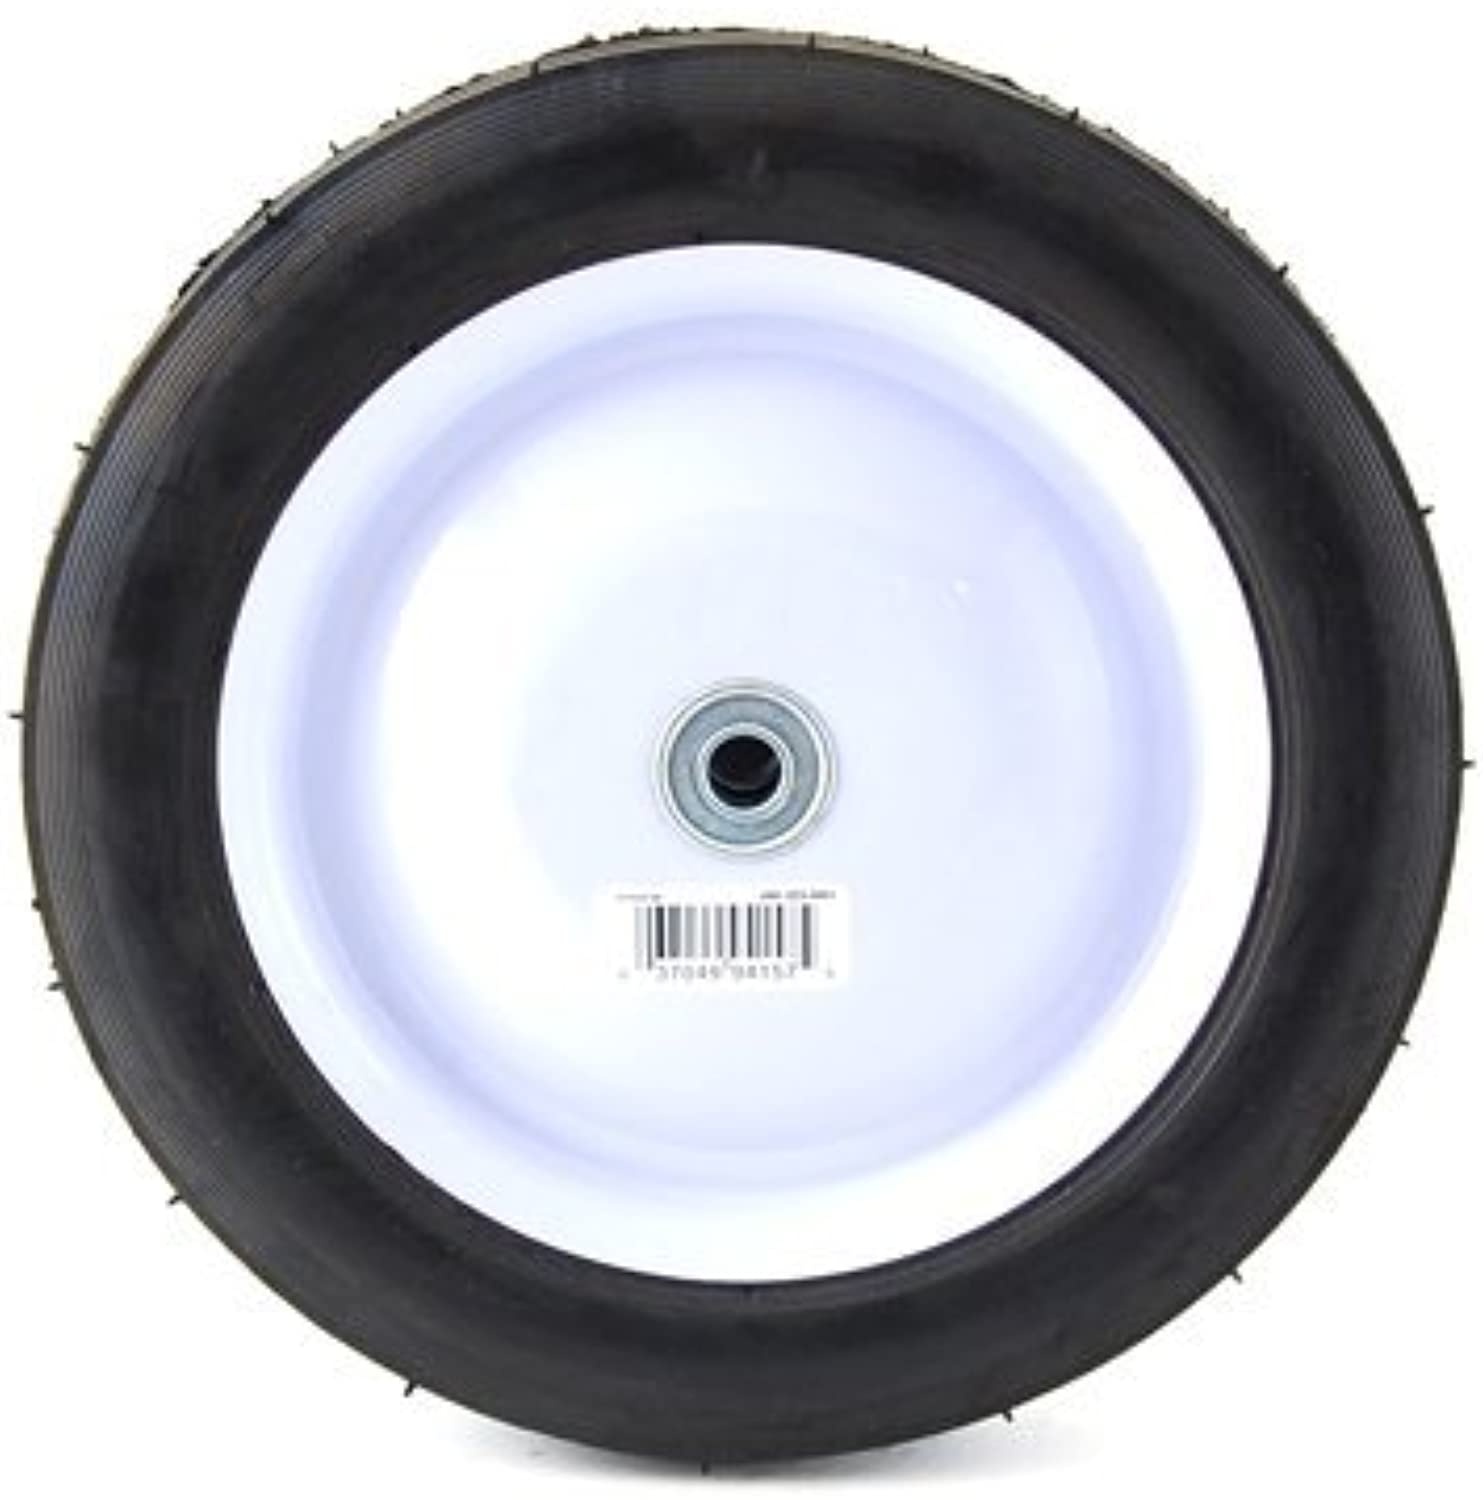 WHEEL 10X1.75 NARROW HUB (Pkg of 3)